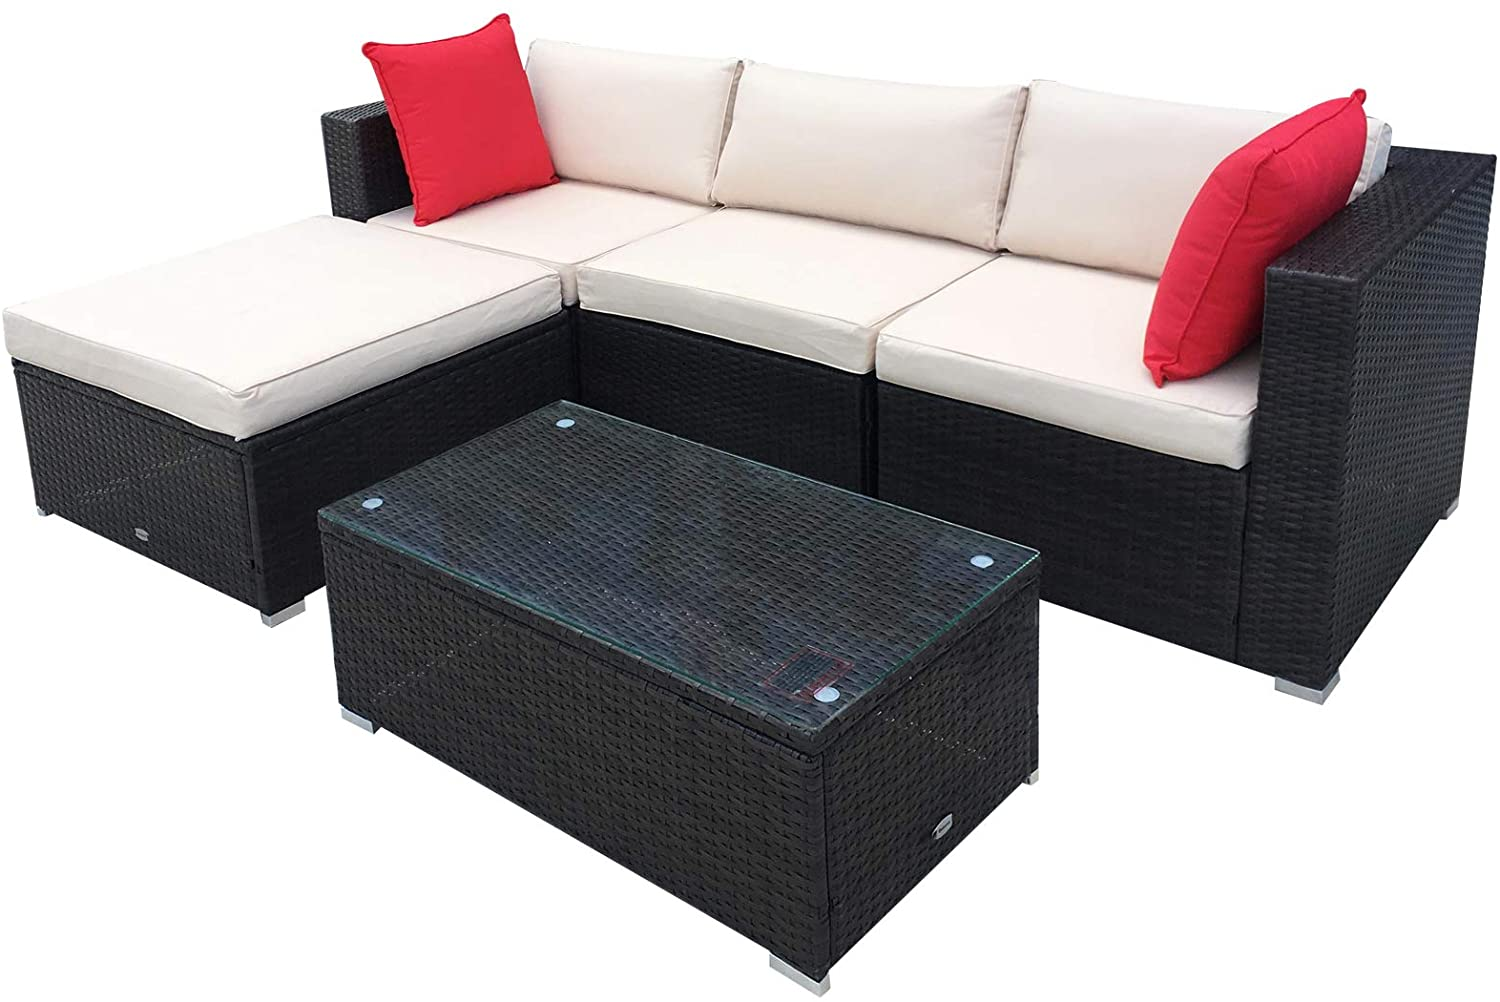 Outsunny 5-Piece Deluxe Outdoor Patio Rattan Furniture Set with Durability Comfortable Seating and a Modern Look, Brown